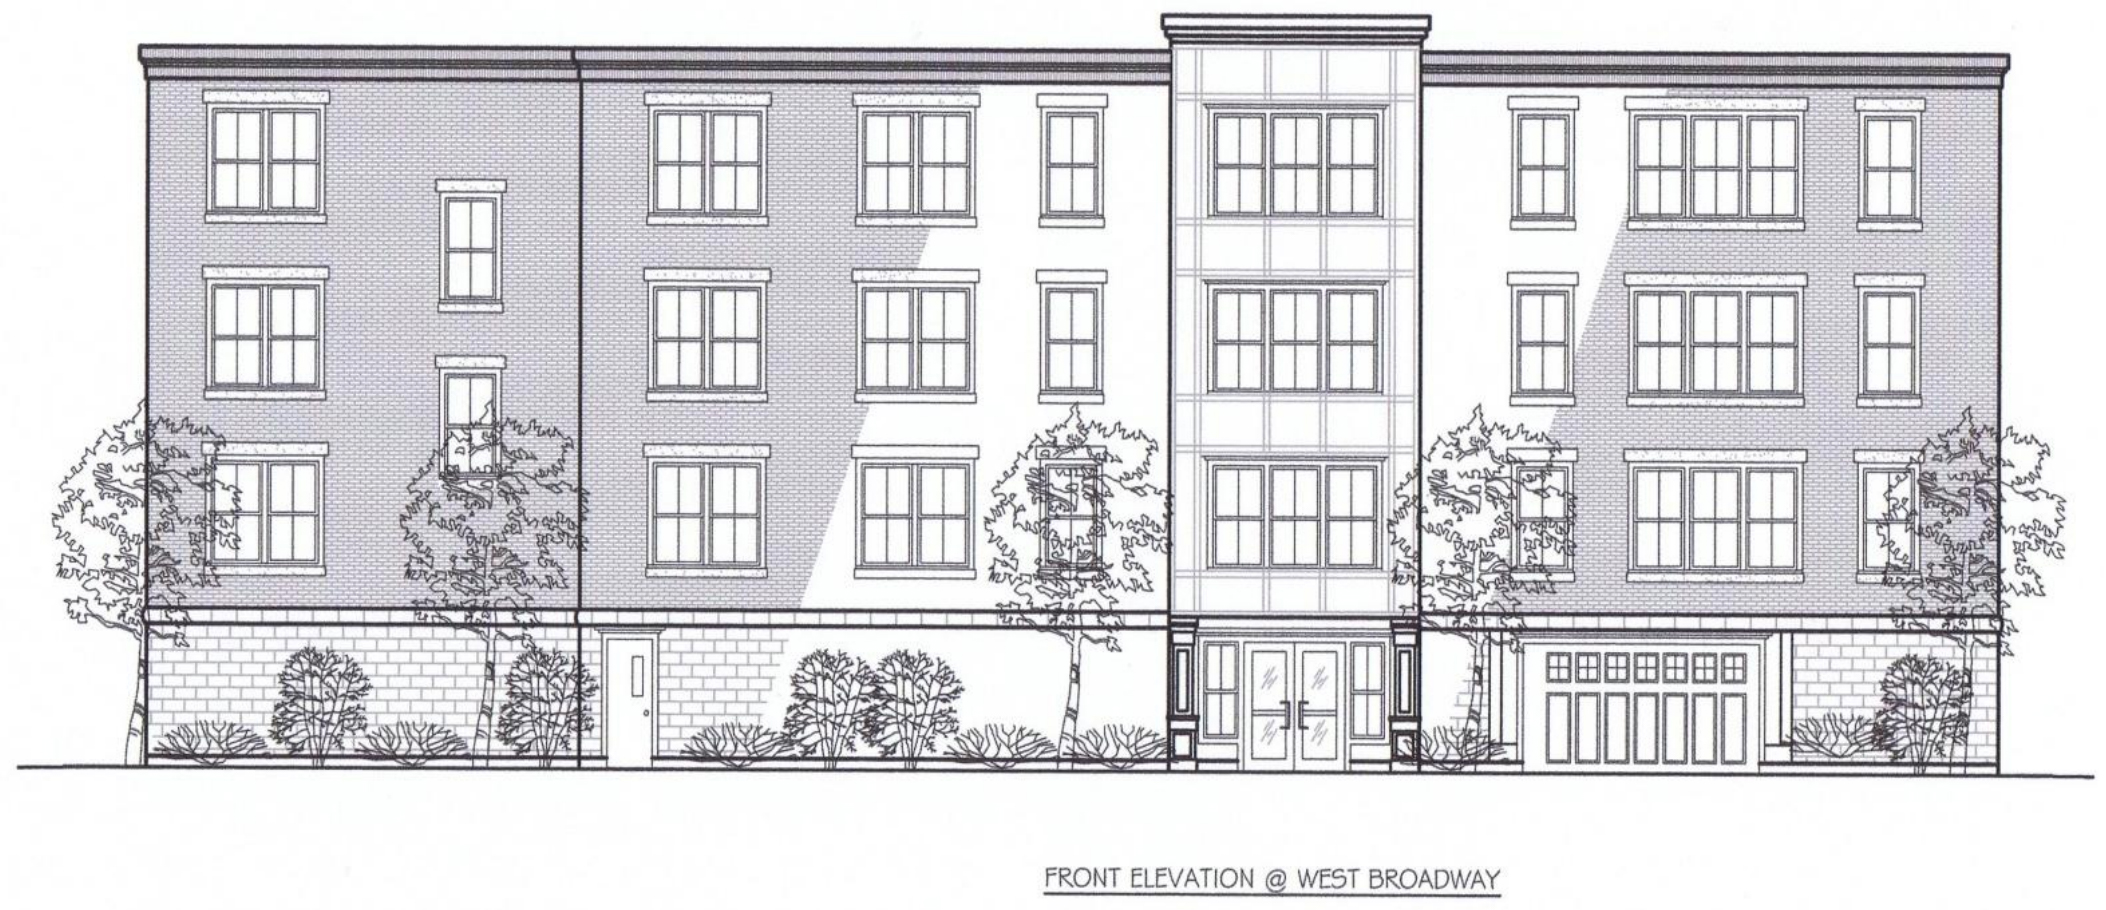 135 athens street south boston real estate office development construction rmc development sutphin architects rendering